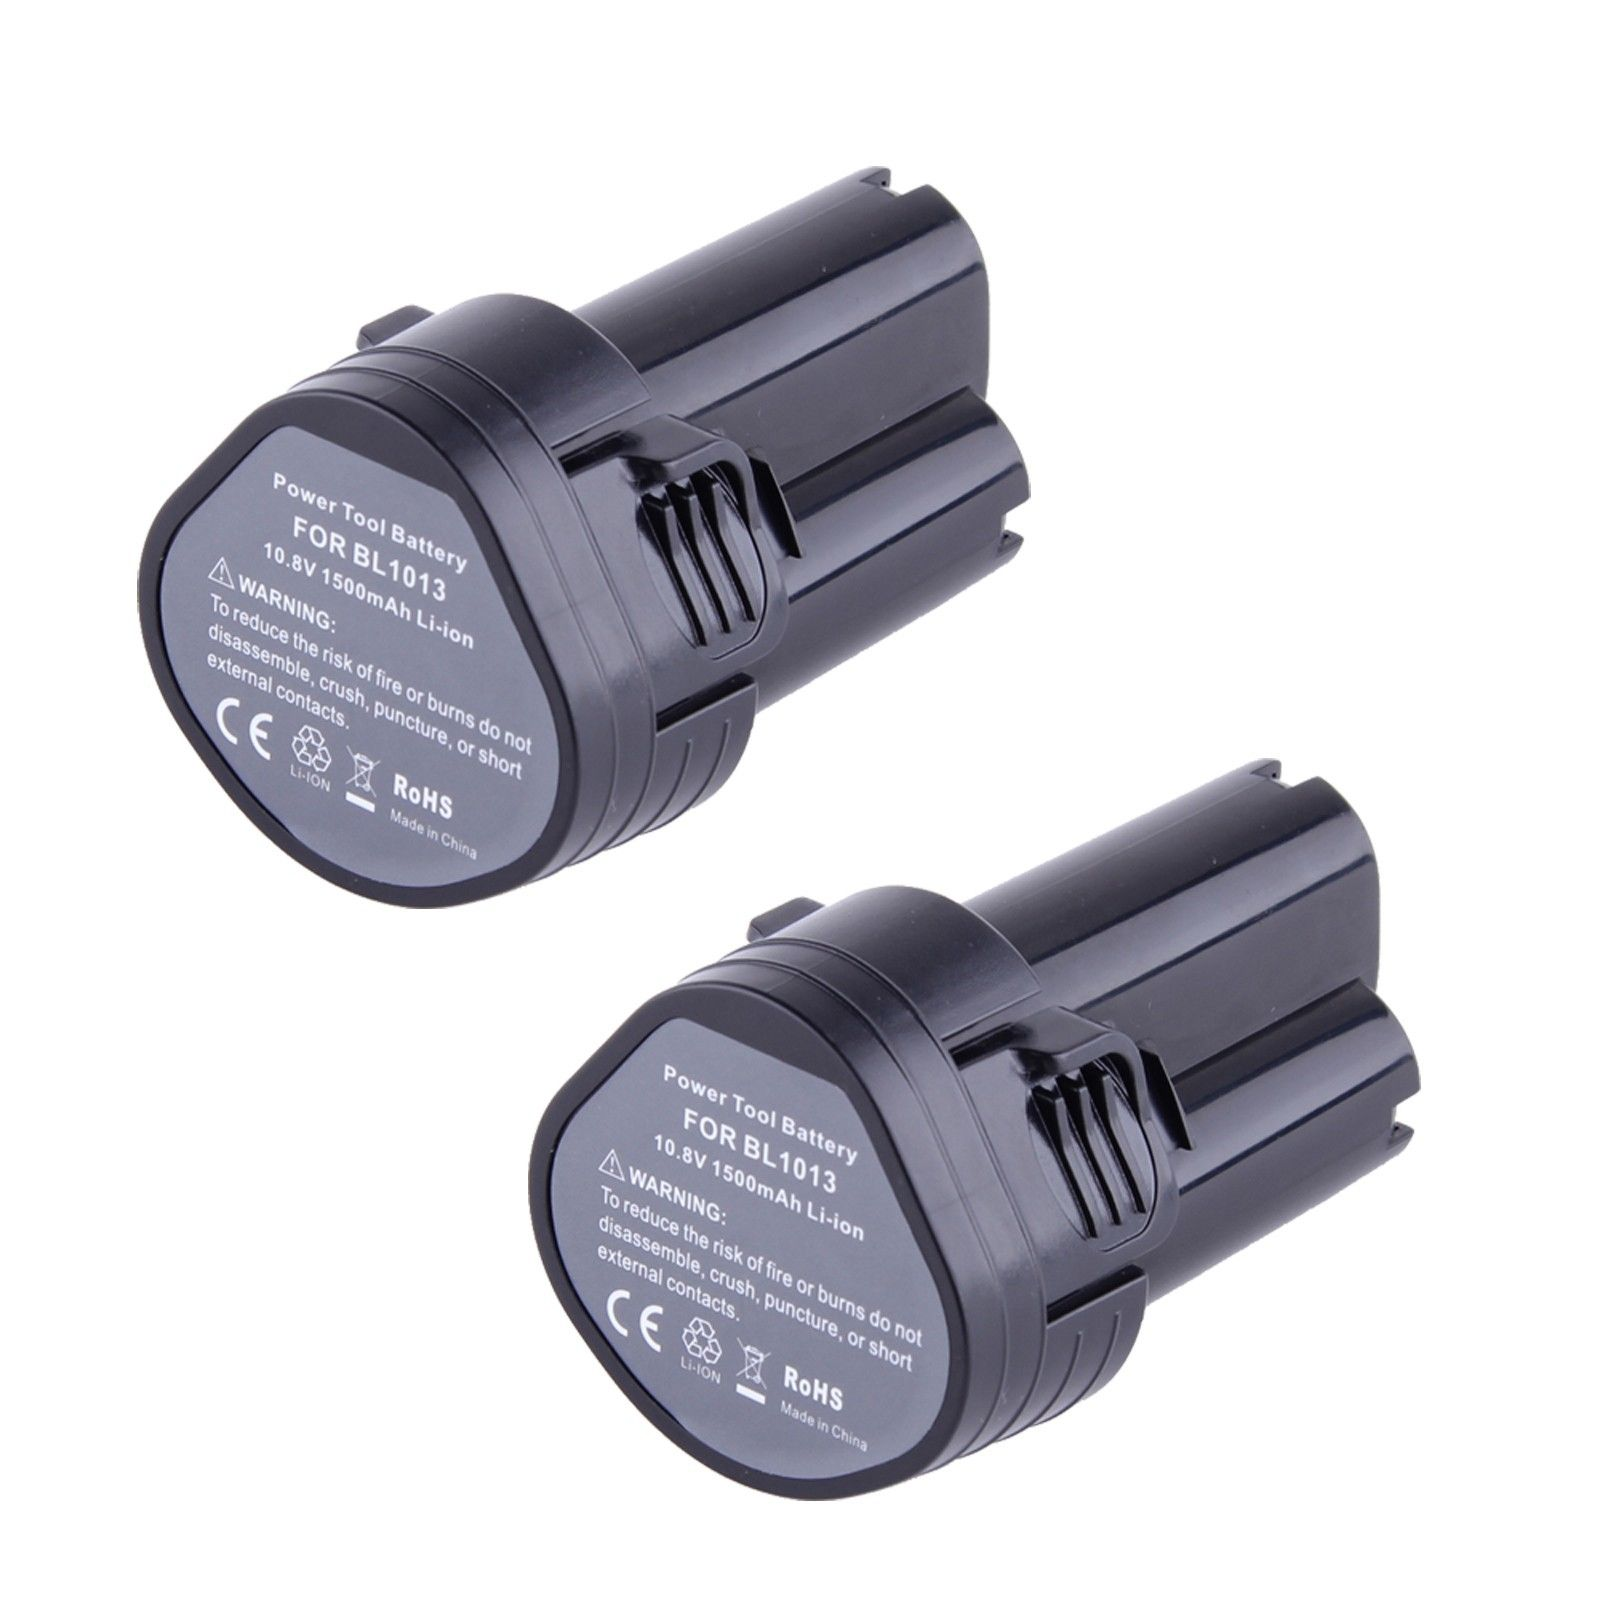 2X 10 8 Volt Li ion Battery for Makita BL1013 194551 4 194550 6 TD090DW LCT203W